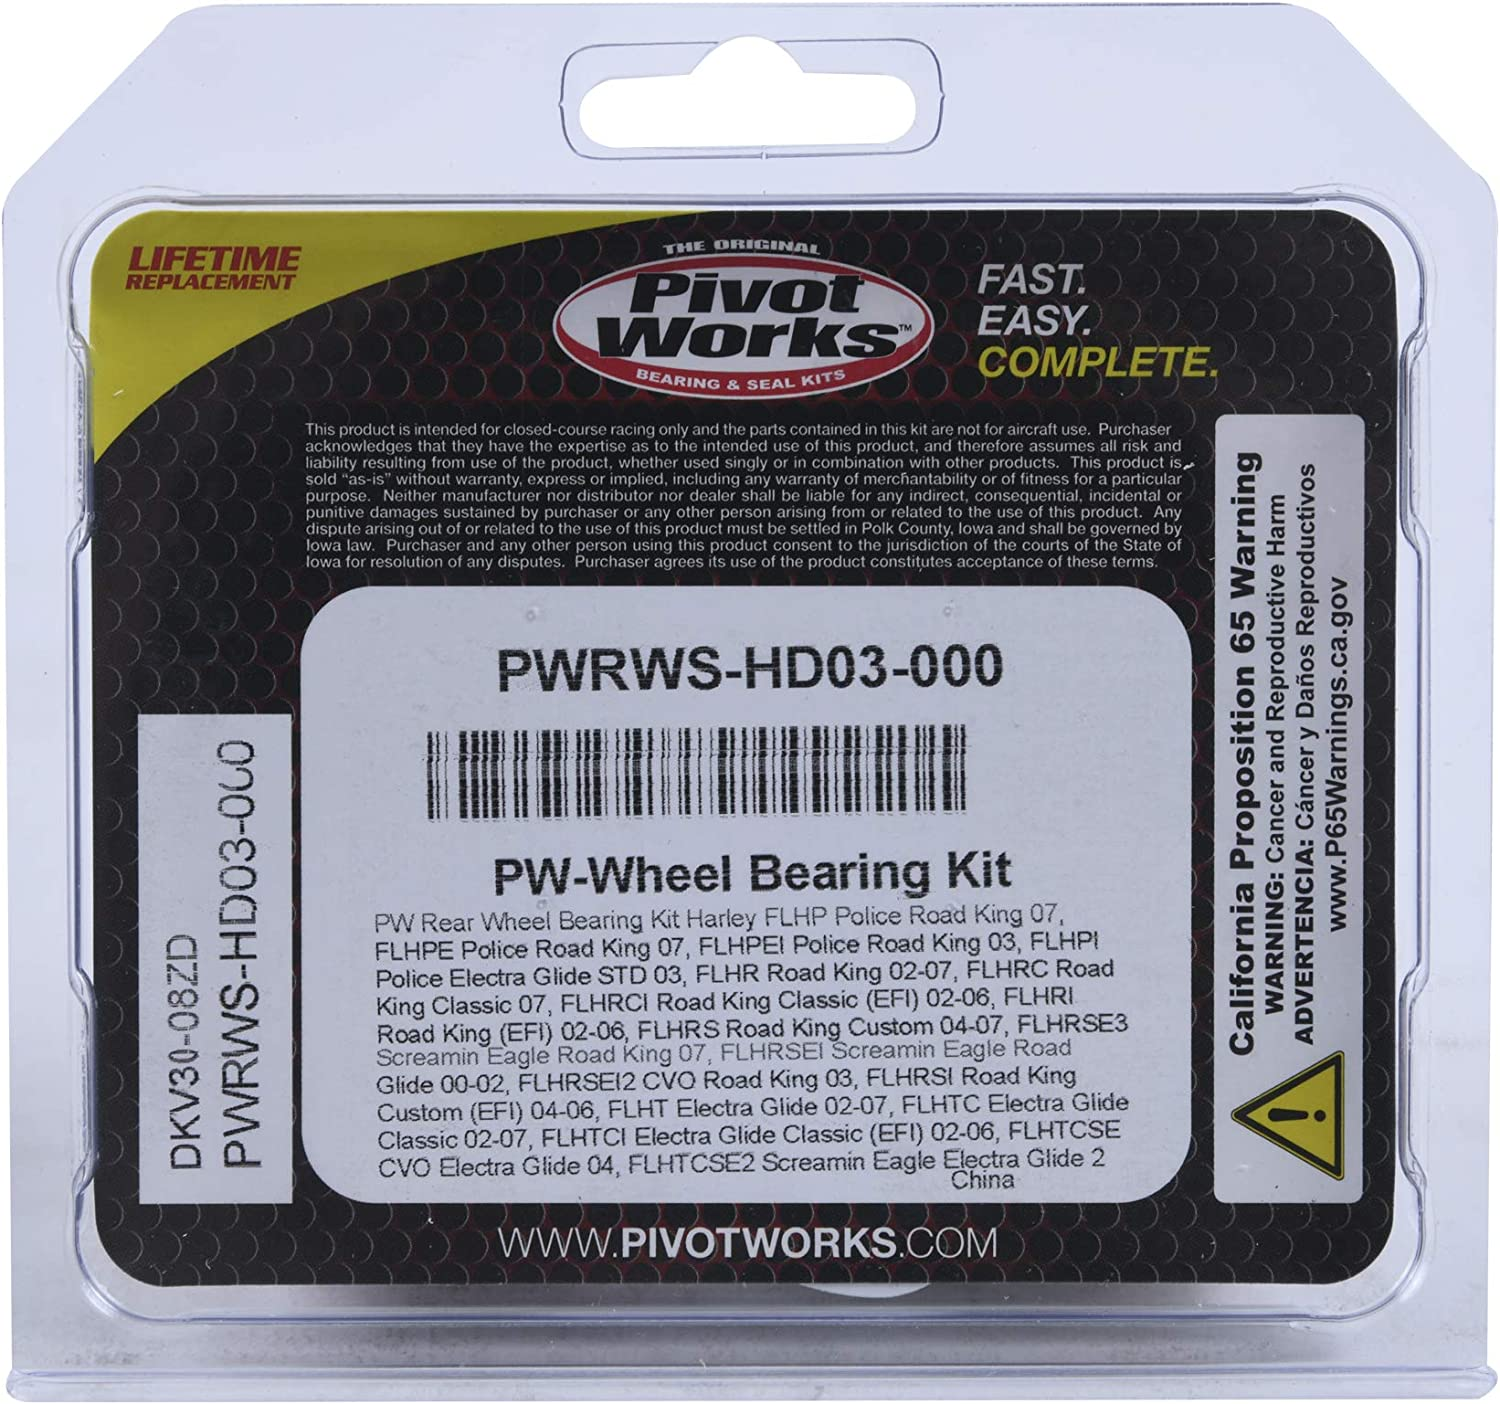 Pivot Works Wheel Bearing Max 70% OFF cheap Kit PWRWS-HD03-000 Compatible Rep With